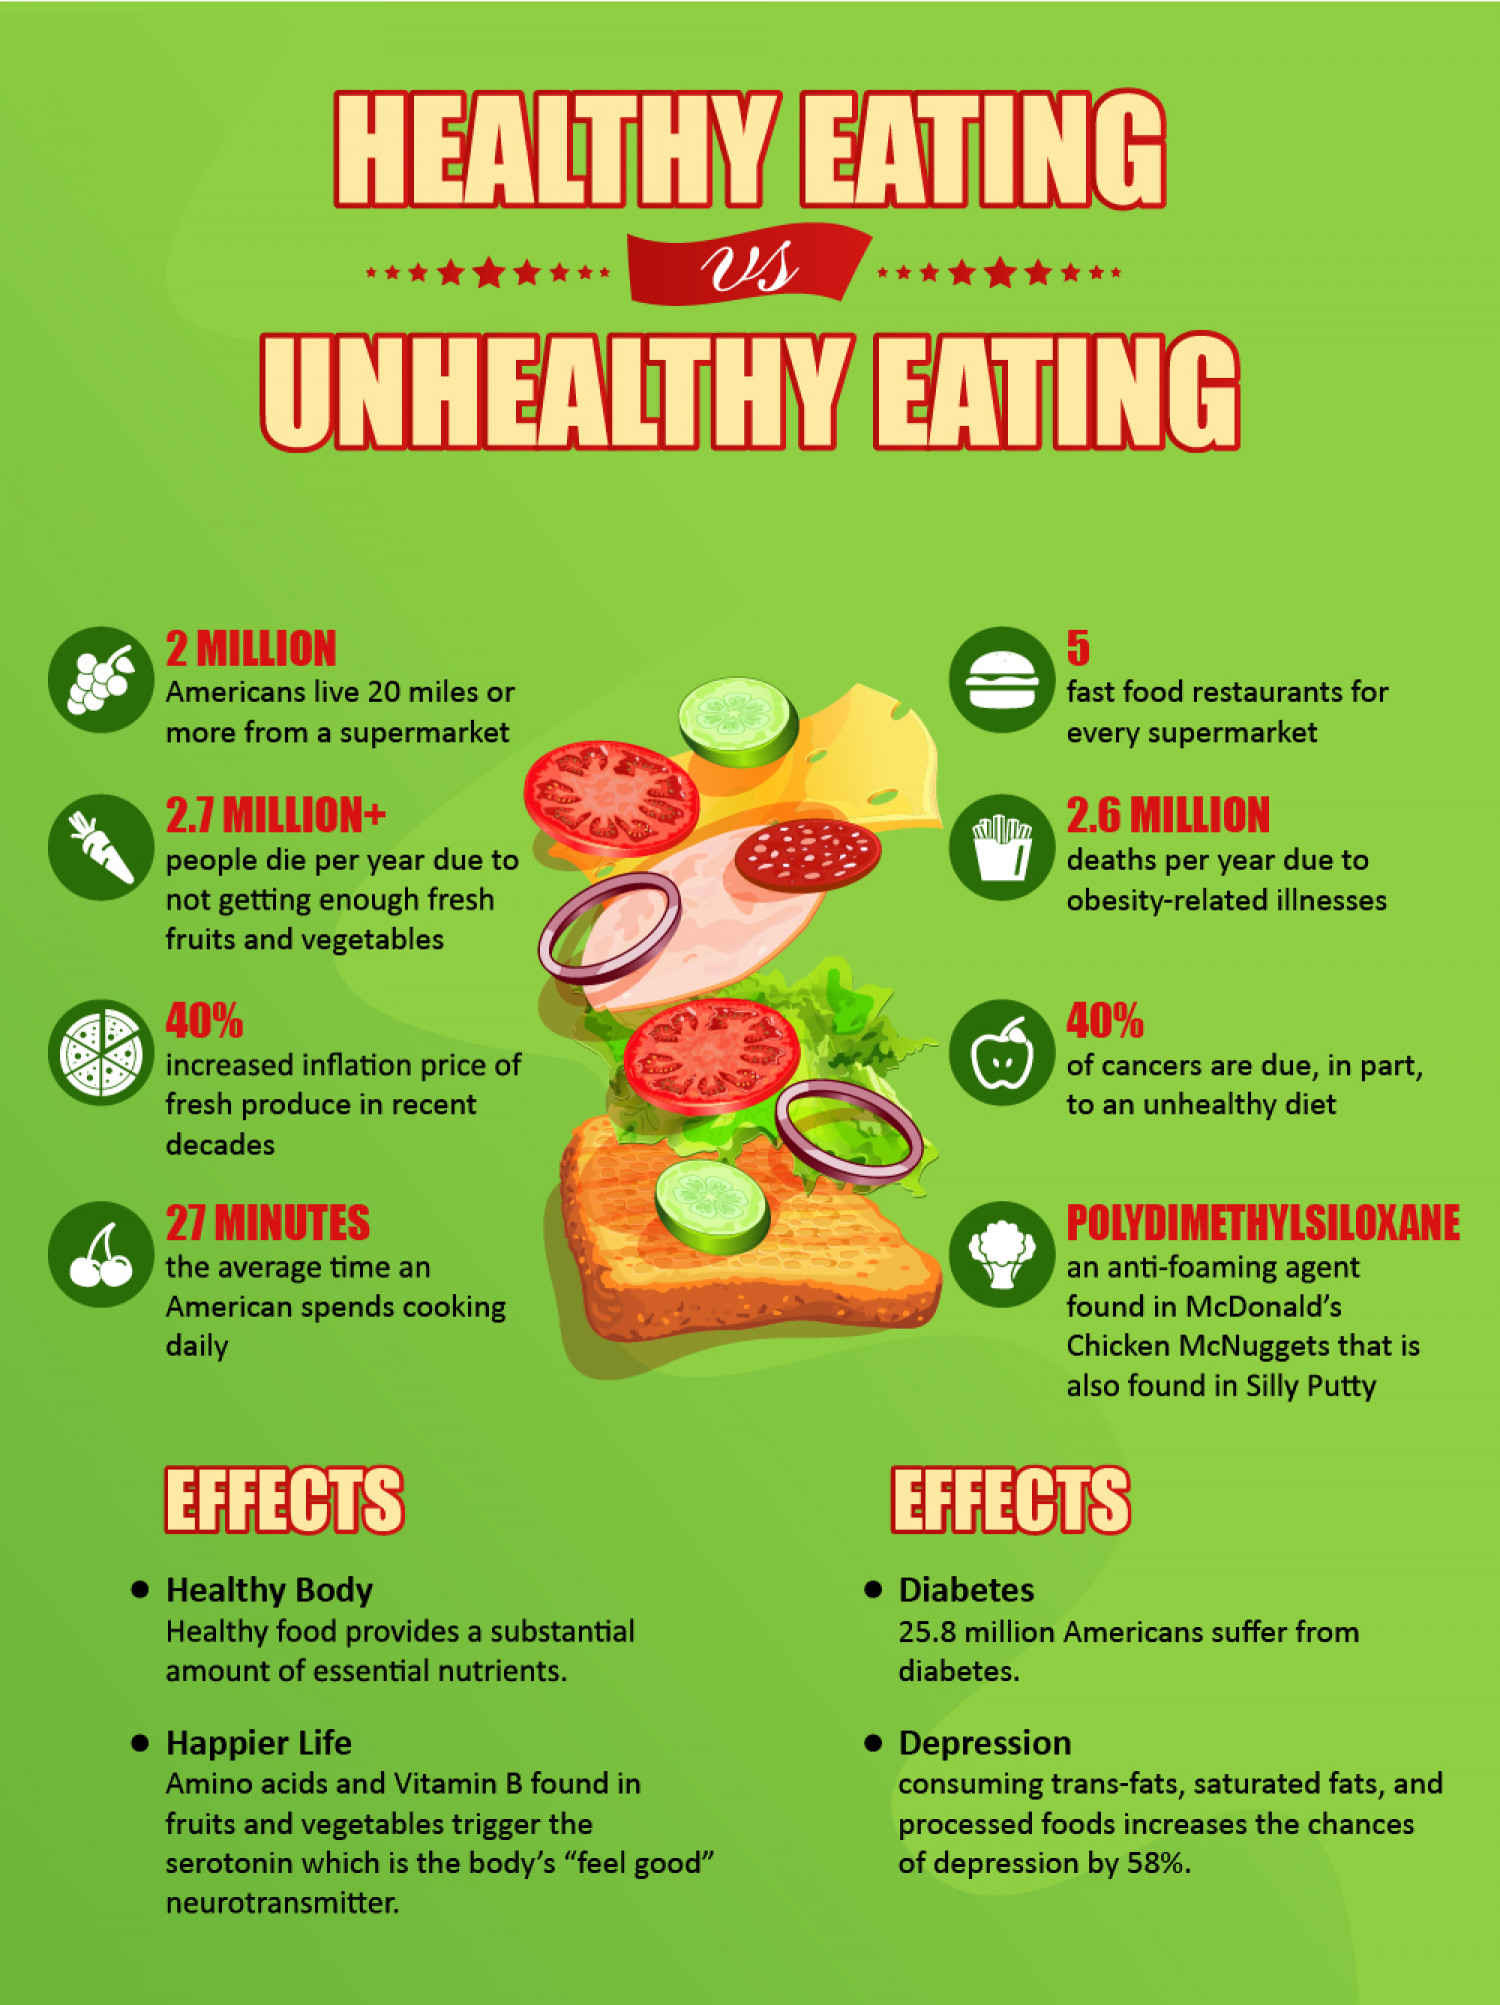 healthy eating habits essay importance of good health essay short  healthy eating essays healthy eating habits essays studymode benefits of a healthy diet essay types of